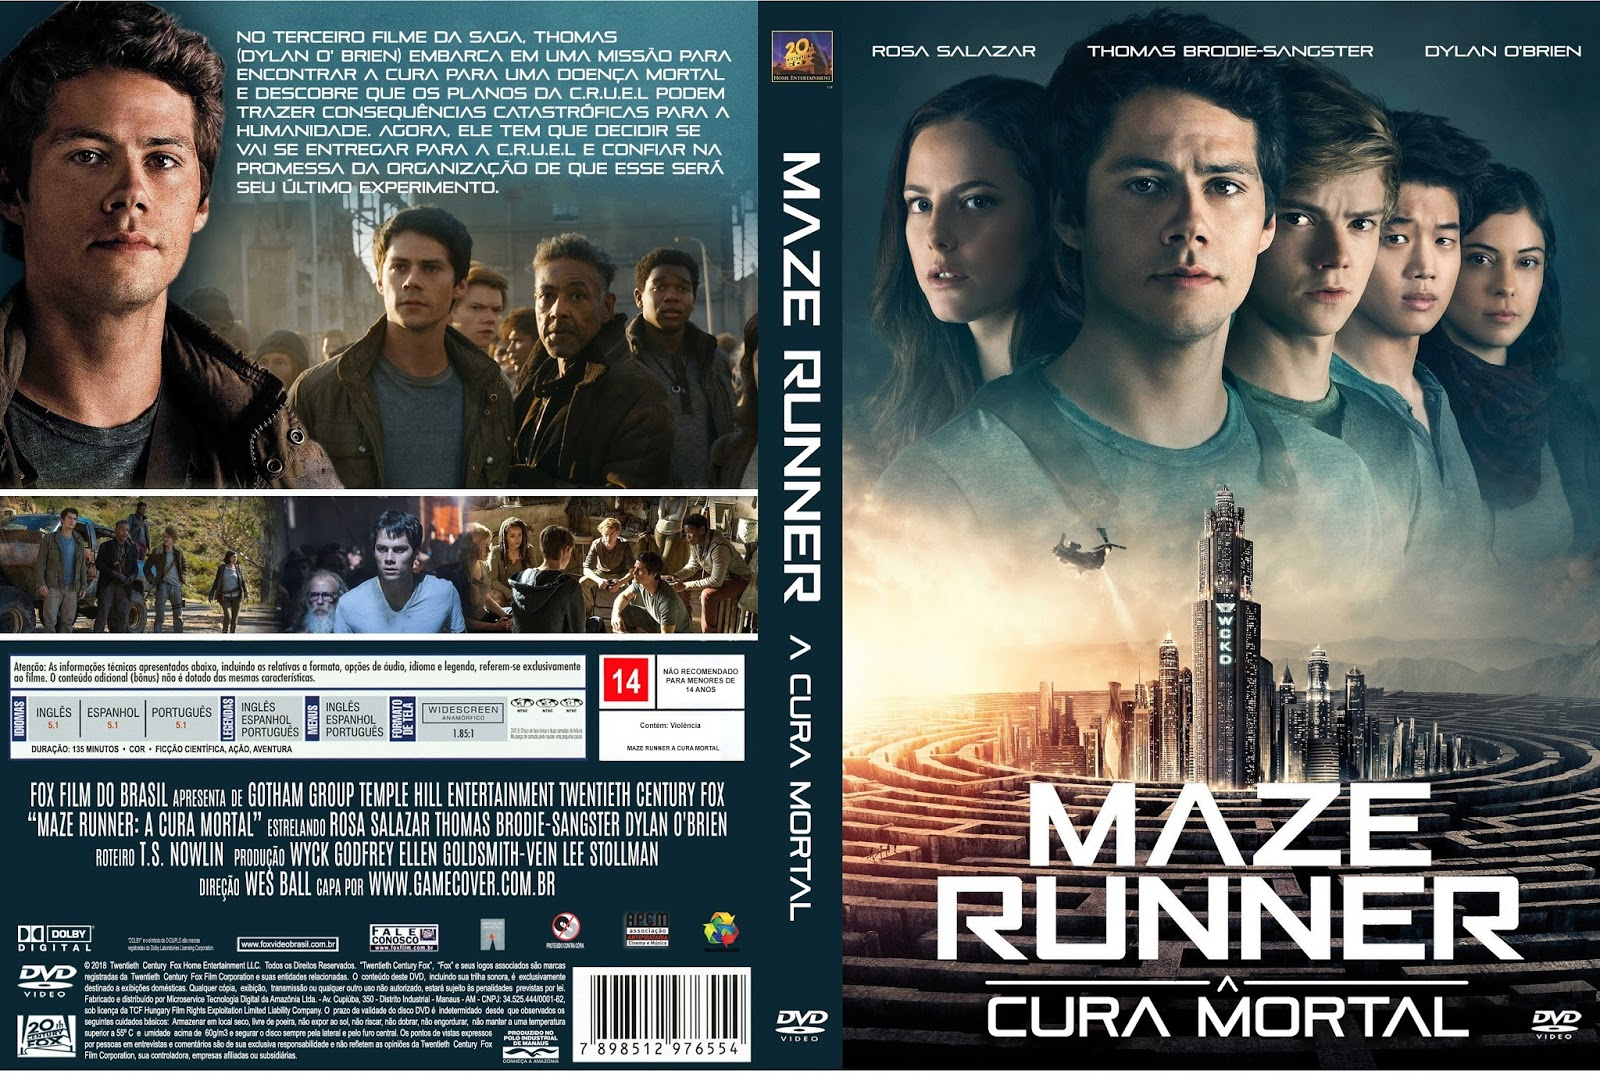 download online Maze Runner A Cura Mortal 2018 Torrent Dublado 720p 1080p completo full